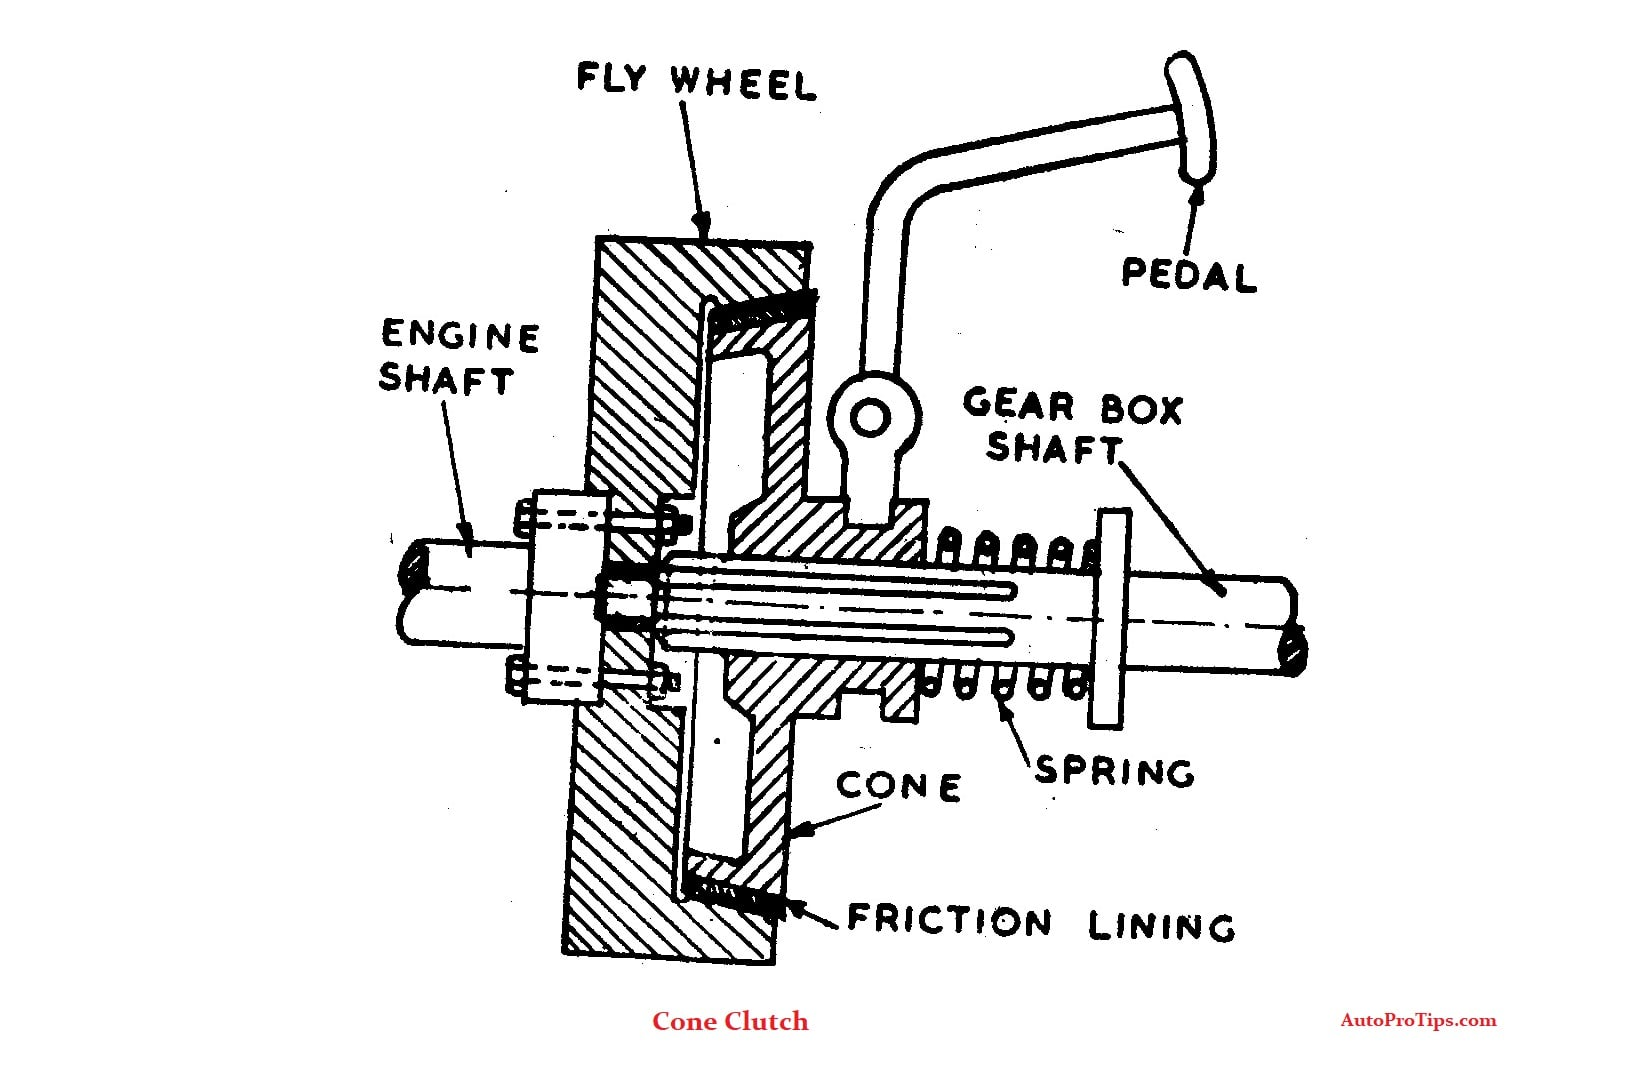 Engine And Clutch Contact Diagram - Wiring Diagrams Show